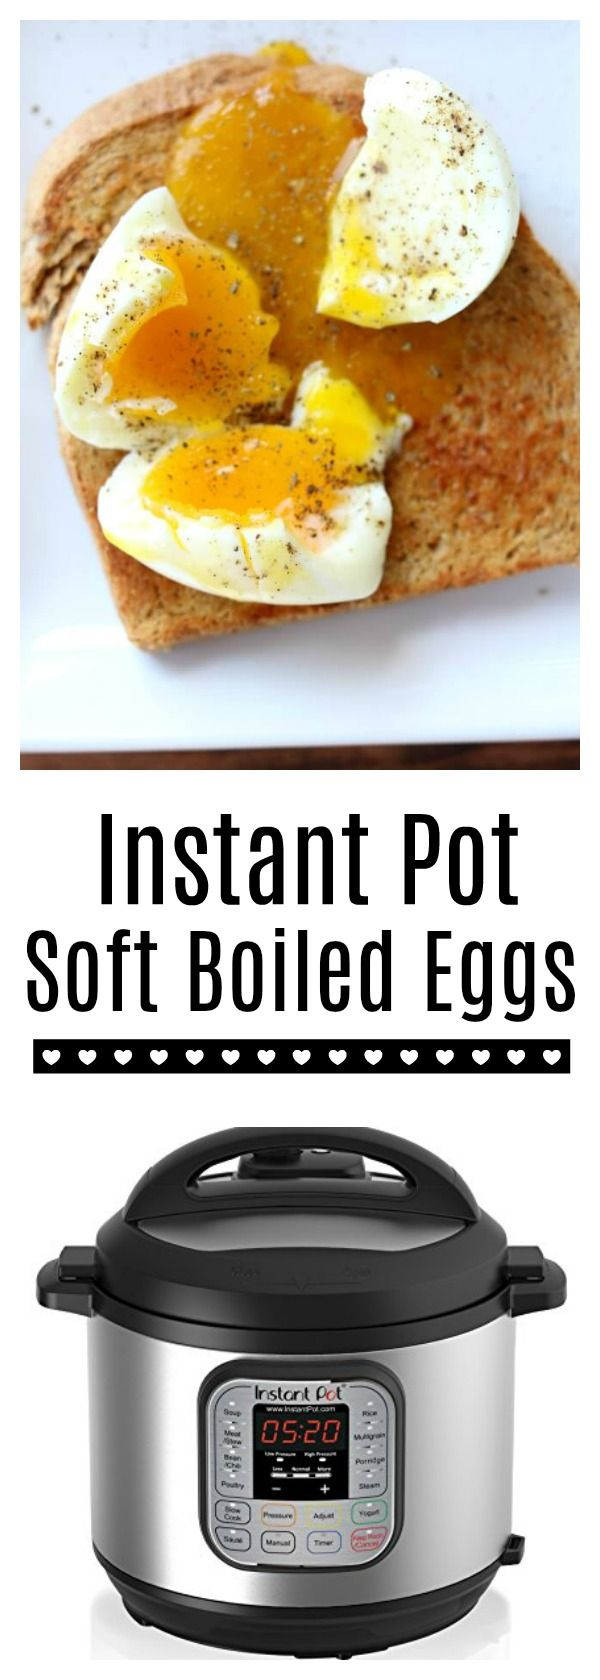 Instant Pot Soft Boiled Eggs–if you're a fan of a nice piece of whole wheat toast dipped into the warm runny yolk of an egg then you're going to love making soft boiled eggs in your pressure cooker. The process is simple and hands off and produces the perfect soft boiled egg.